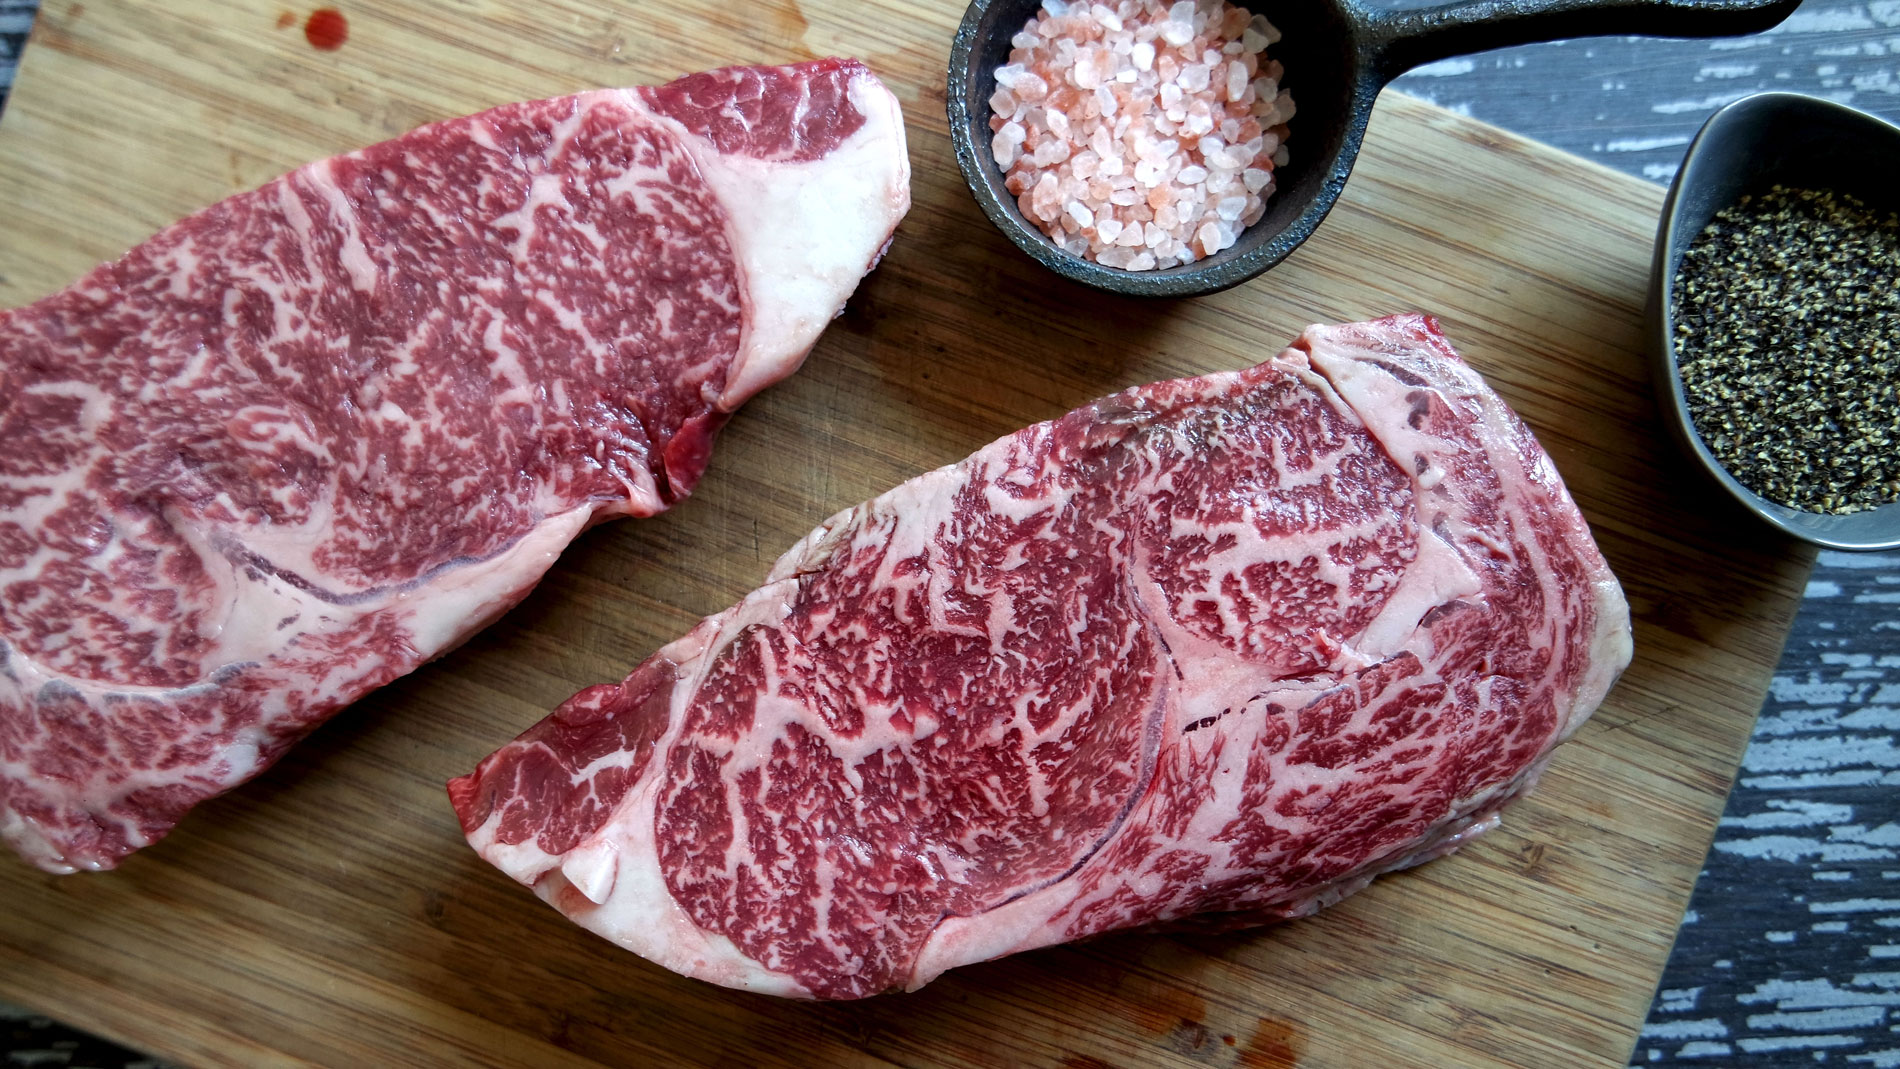 The 9 best sites to buy great meat online, according to chefs: